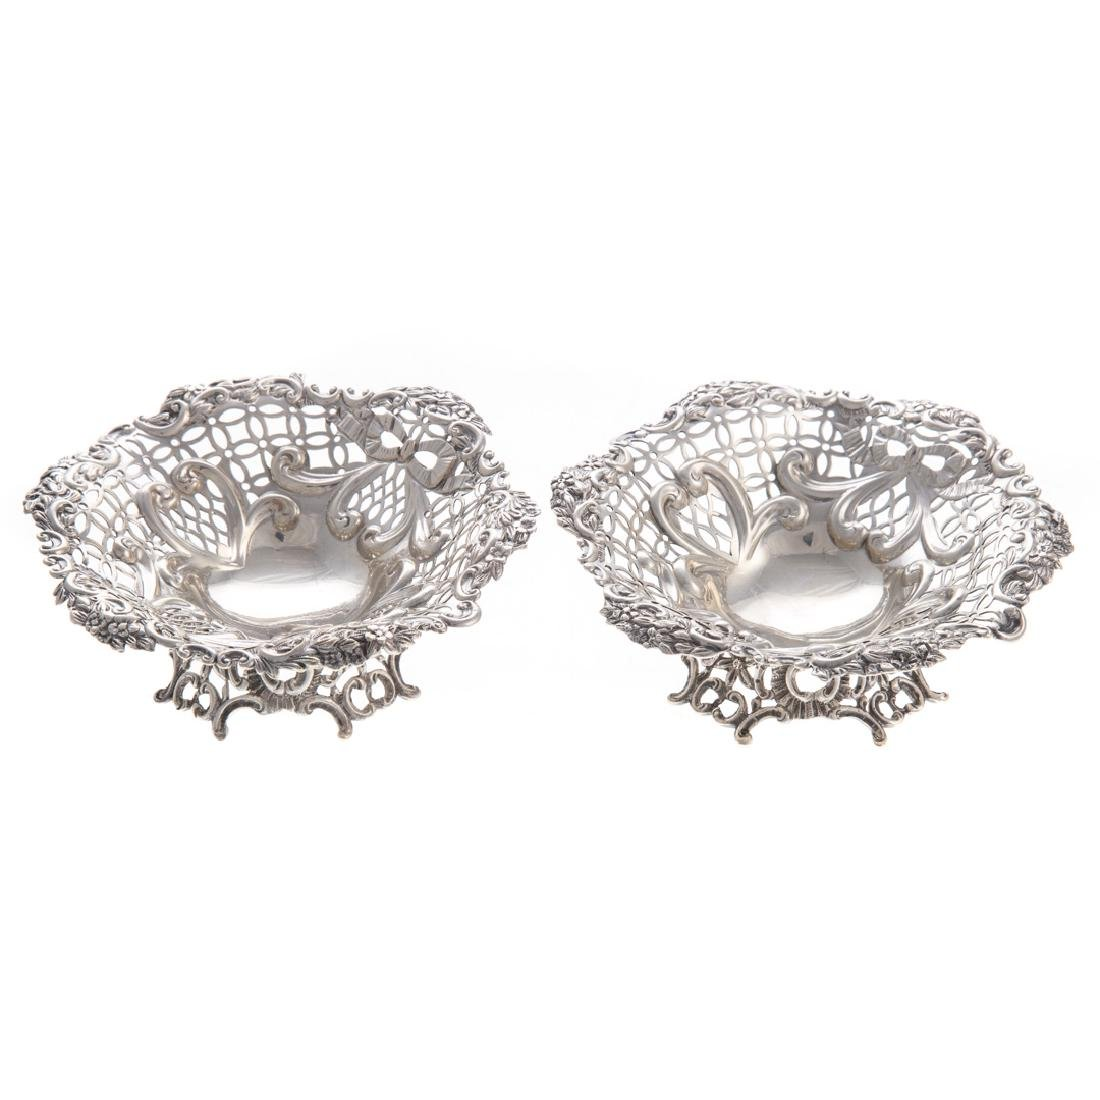 Pair Victorian silver open worked bon bon dishes